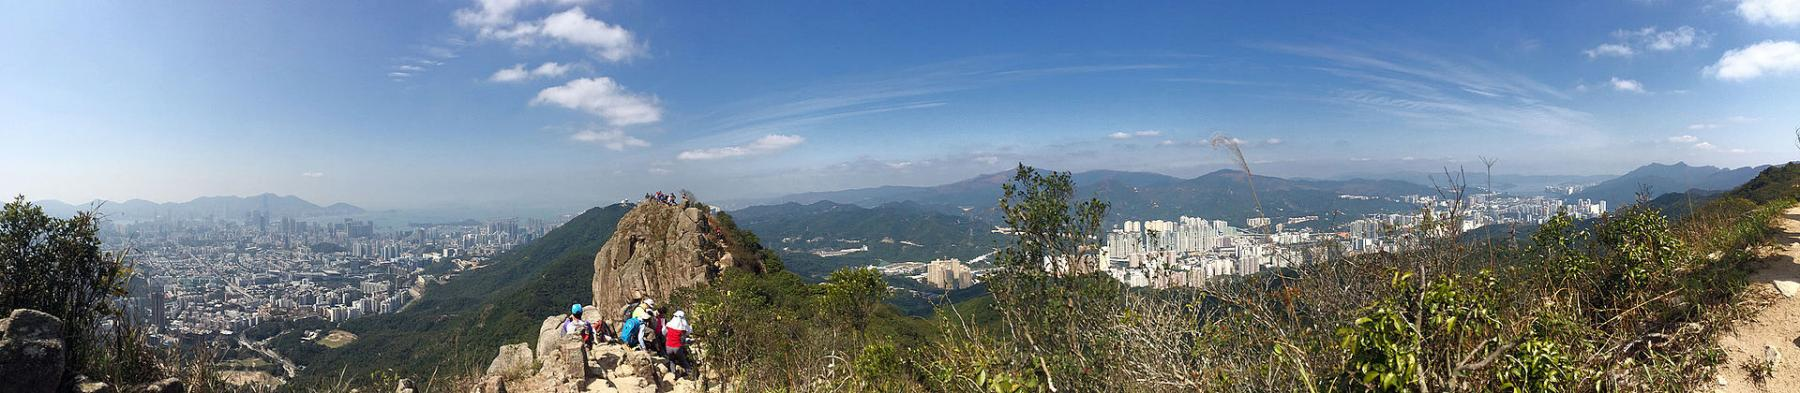 Explore the Great Outdoor in Hong Kong by FOOT to Lion Rock starting at Kowloon, Hong Kong